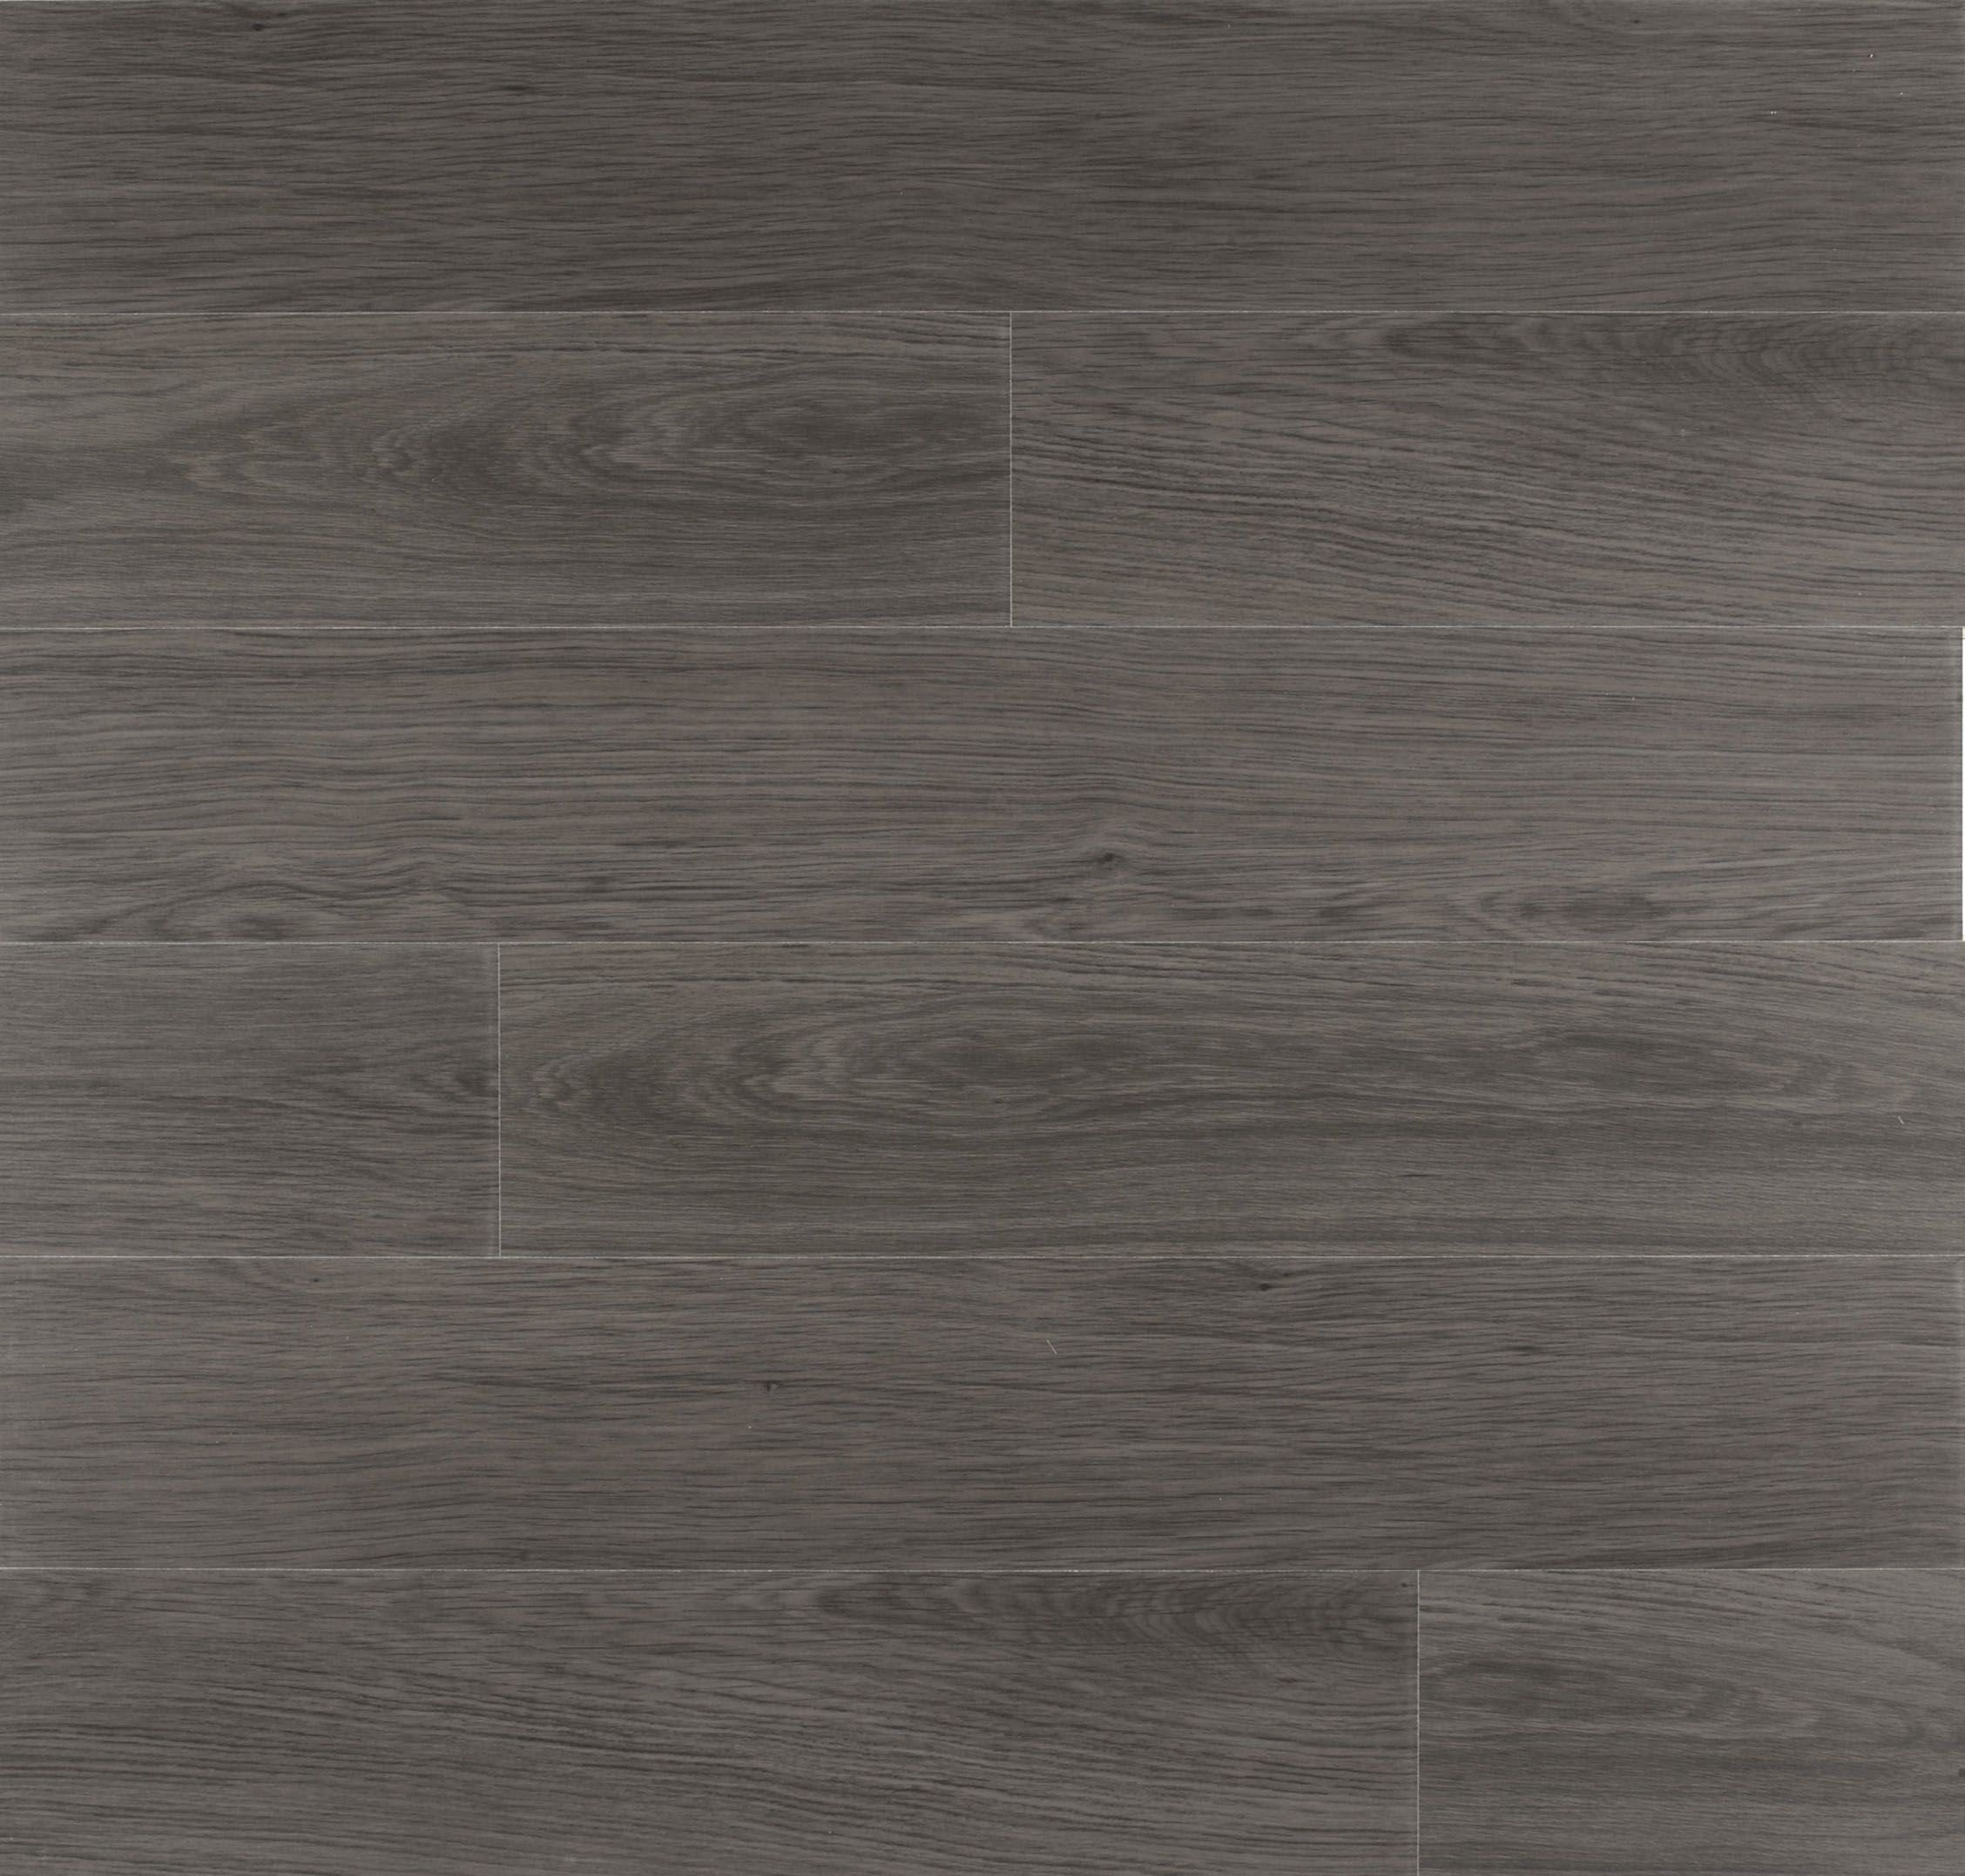 dark wood floors with hint of grey must have these one day in my